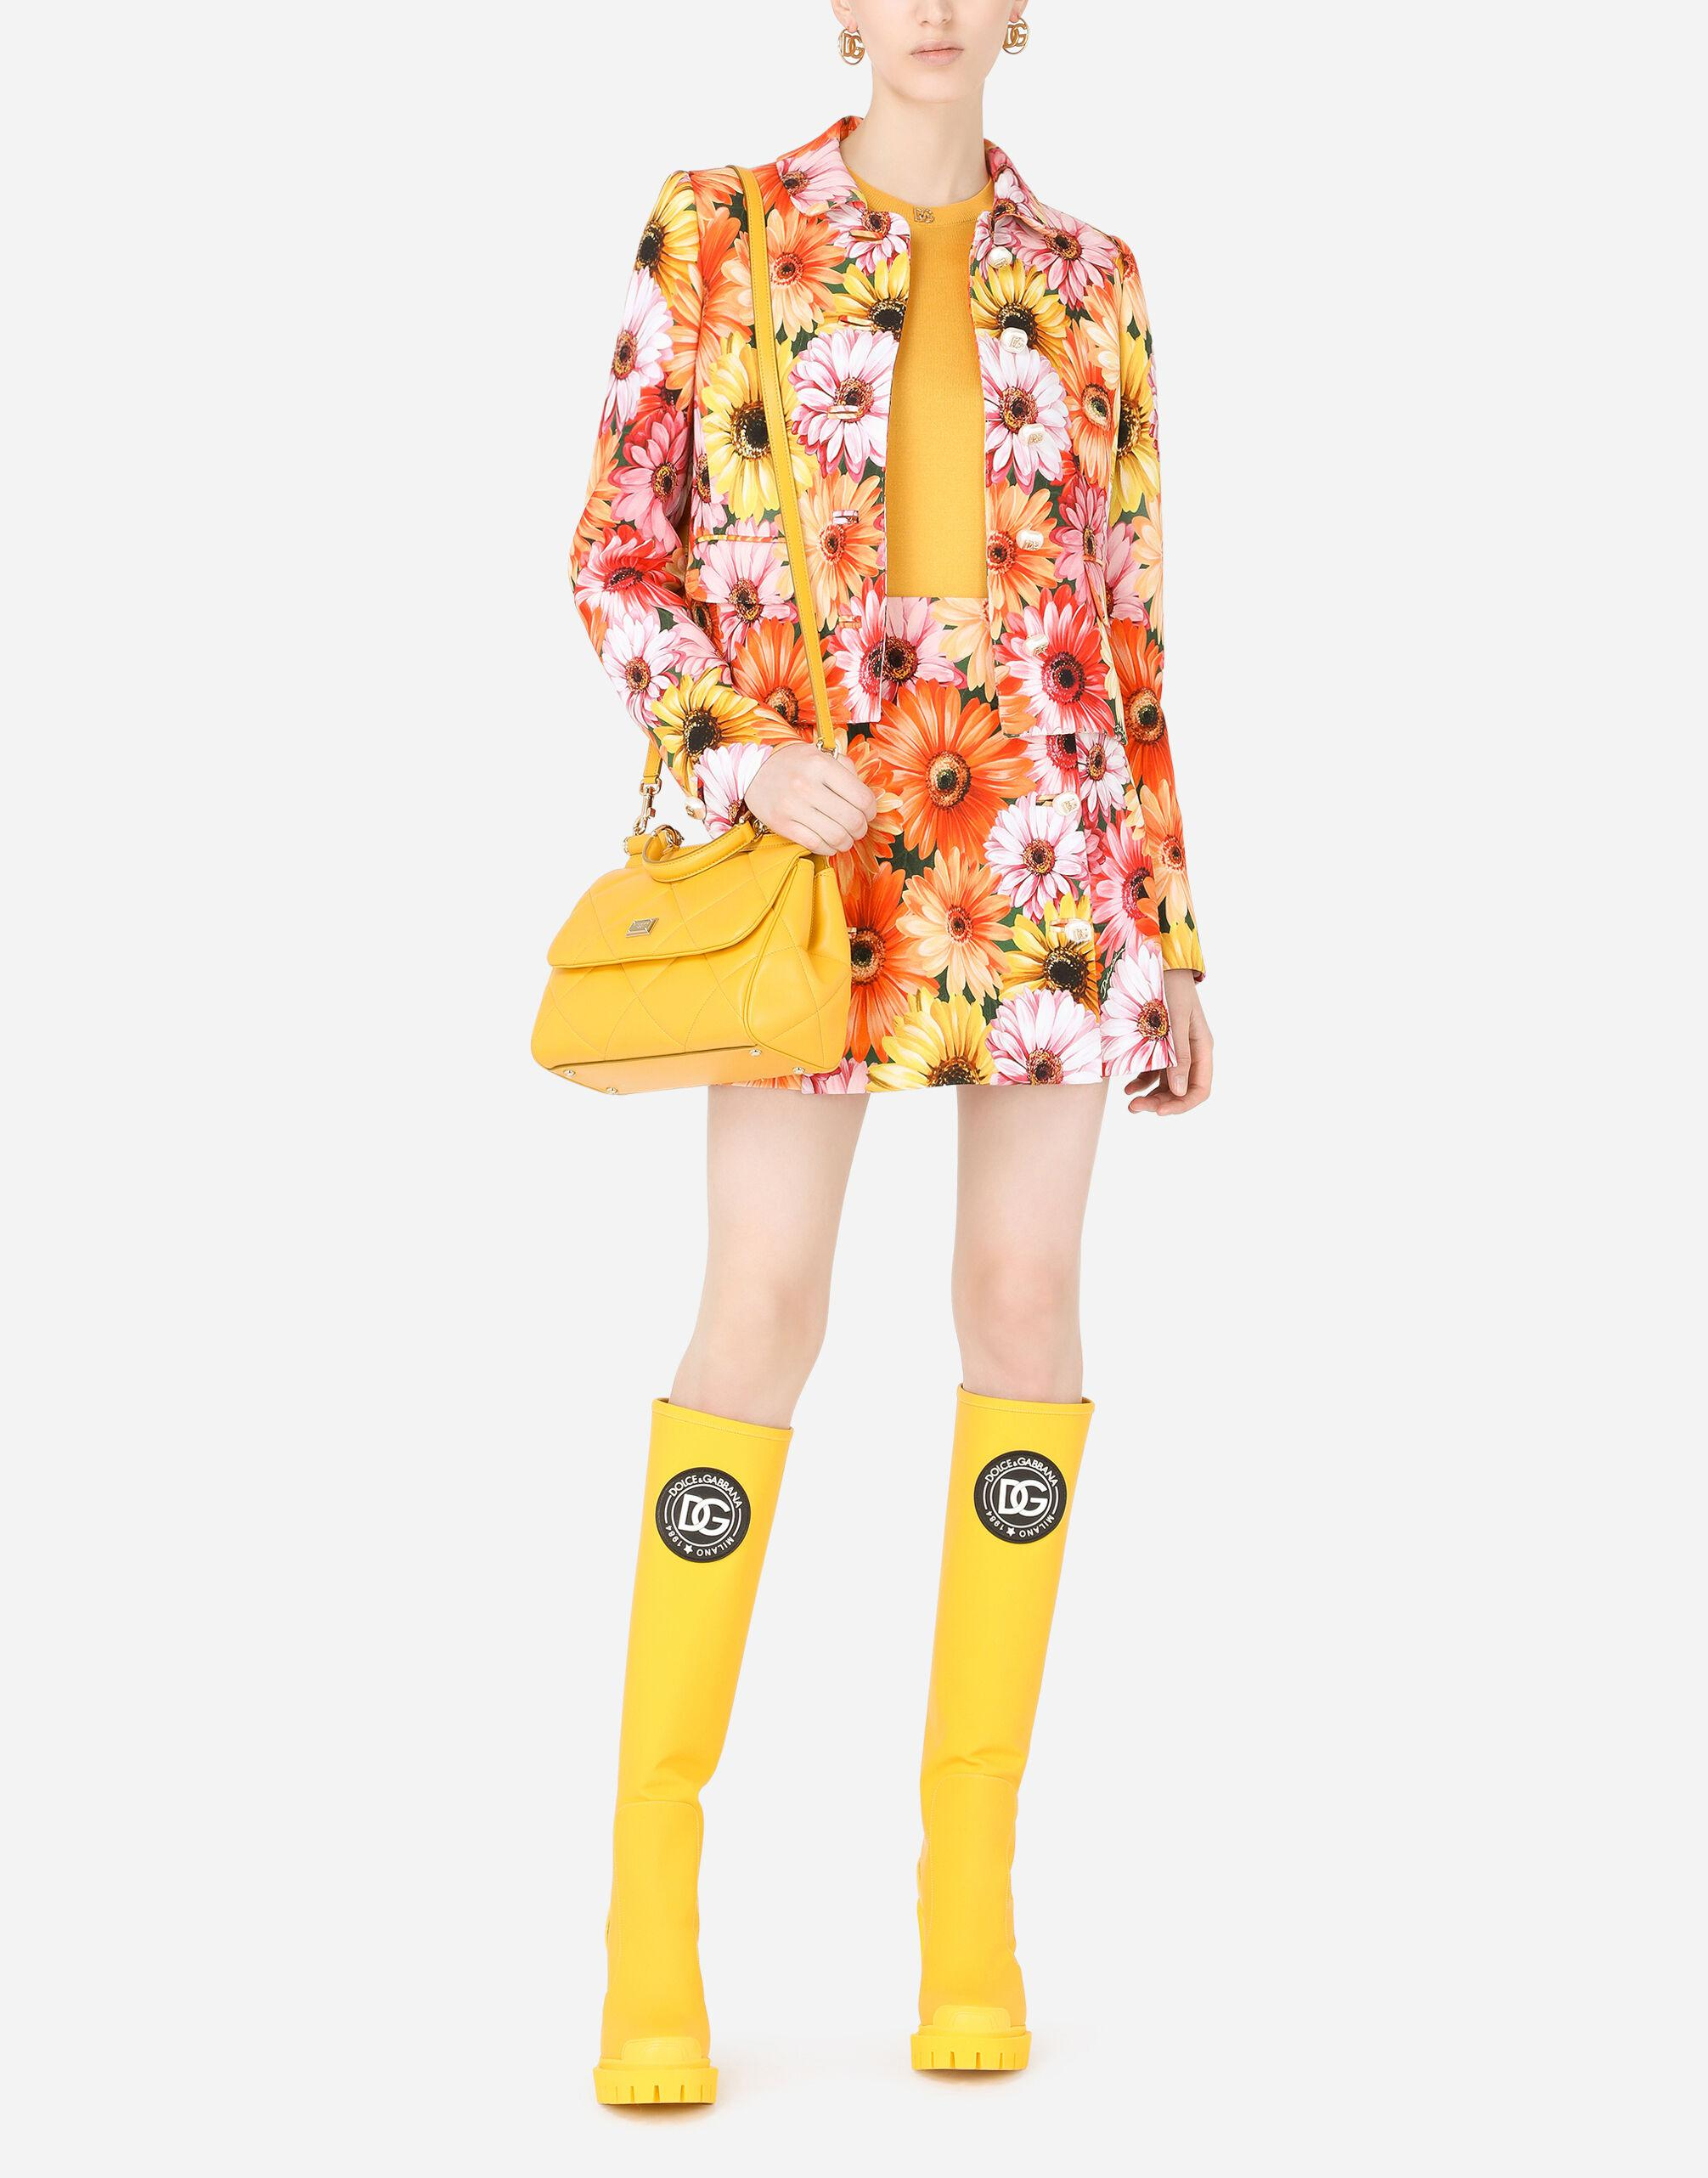 Cady miniskirt with gerbera-daisy print and decorative pearl DG buttons 4